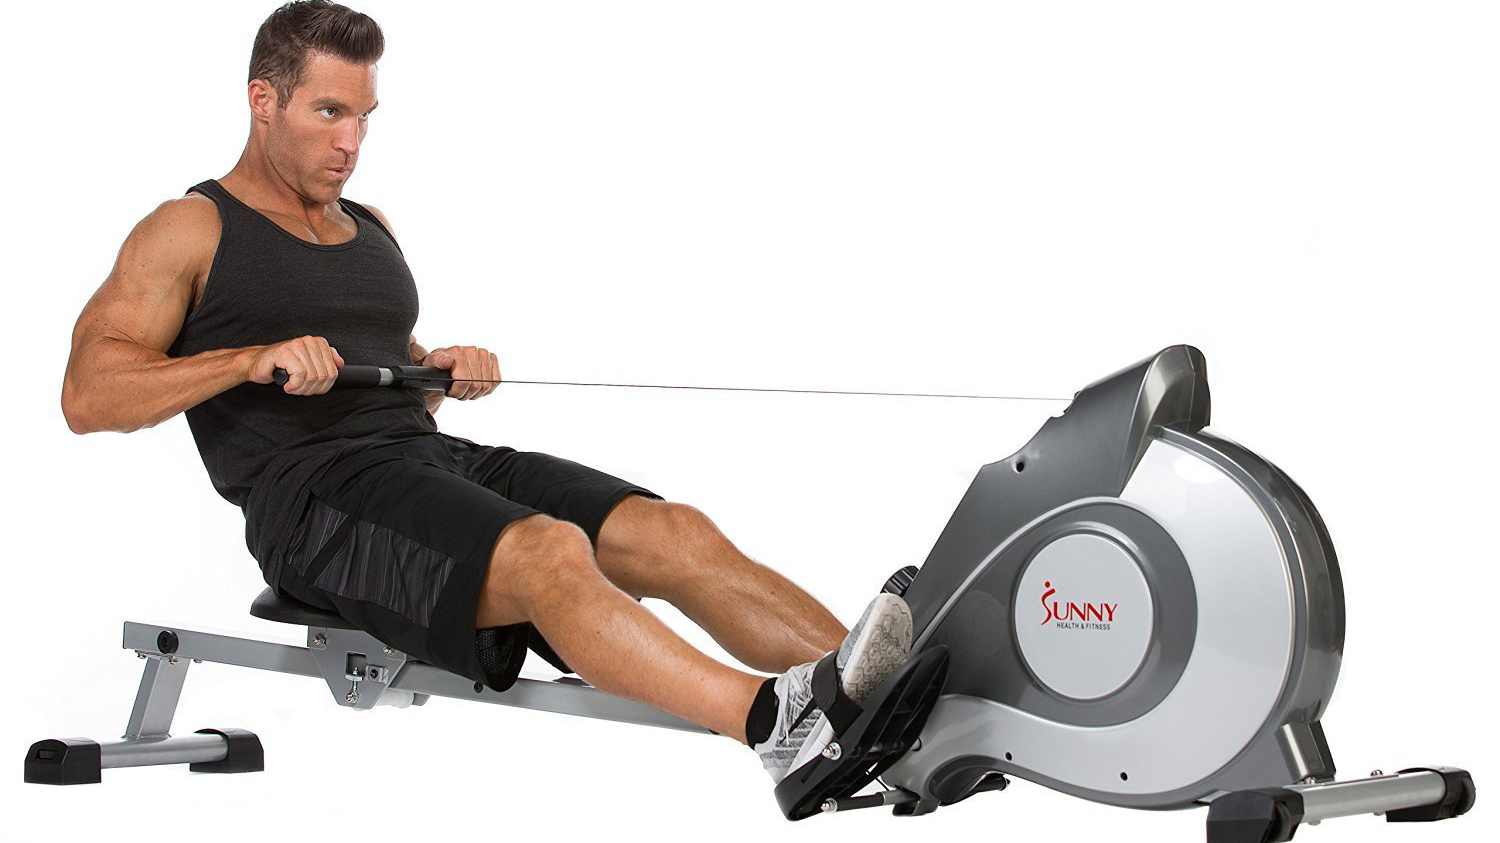 Right Now Take an Amazing 48% Off This Portable Rowing Machine